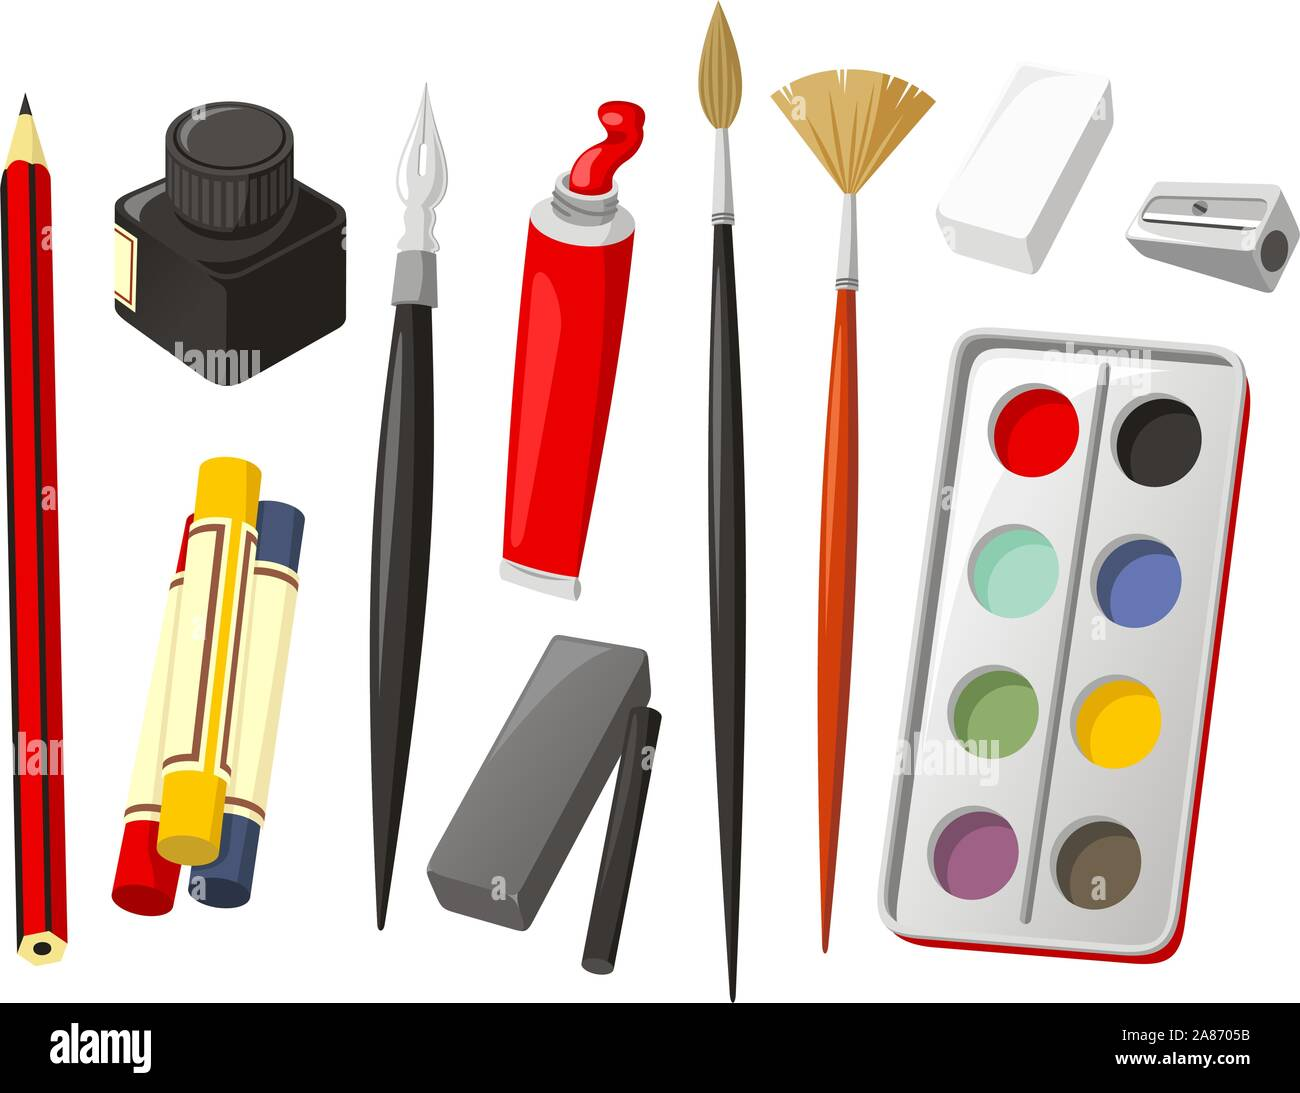 Art Icon Set, with Pencil, crayon, wax crayon, ink, quill, oil paint, brush, rubber, sharpener, watercolor, watercolor paint, charcoal. Vector illustr Stock Vector